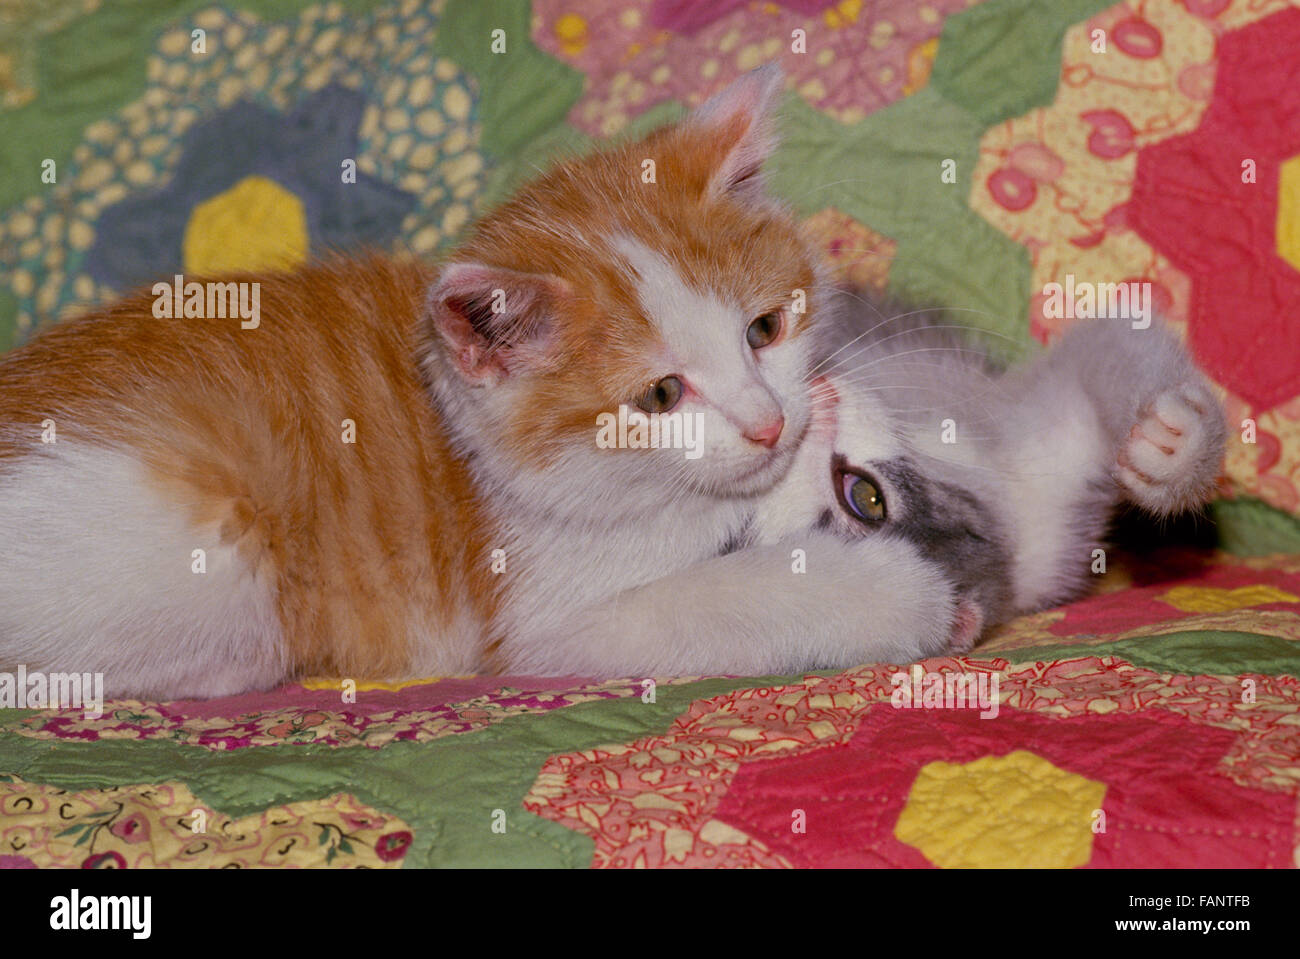 Two kittens playing on home made quilt, Maine, USA - Stock Image